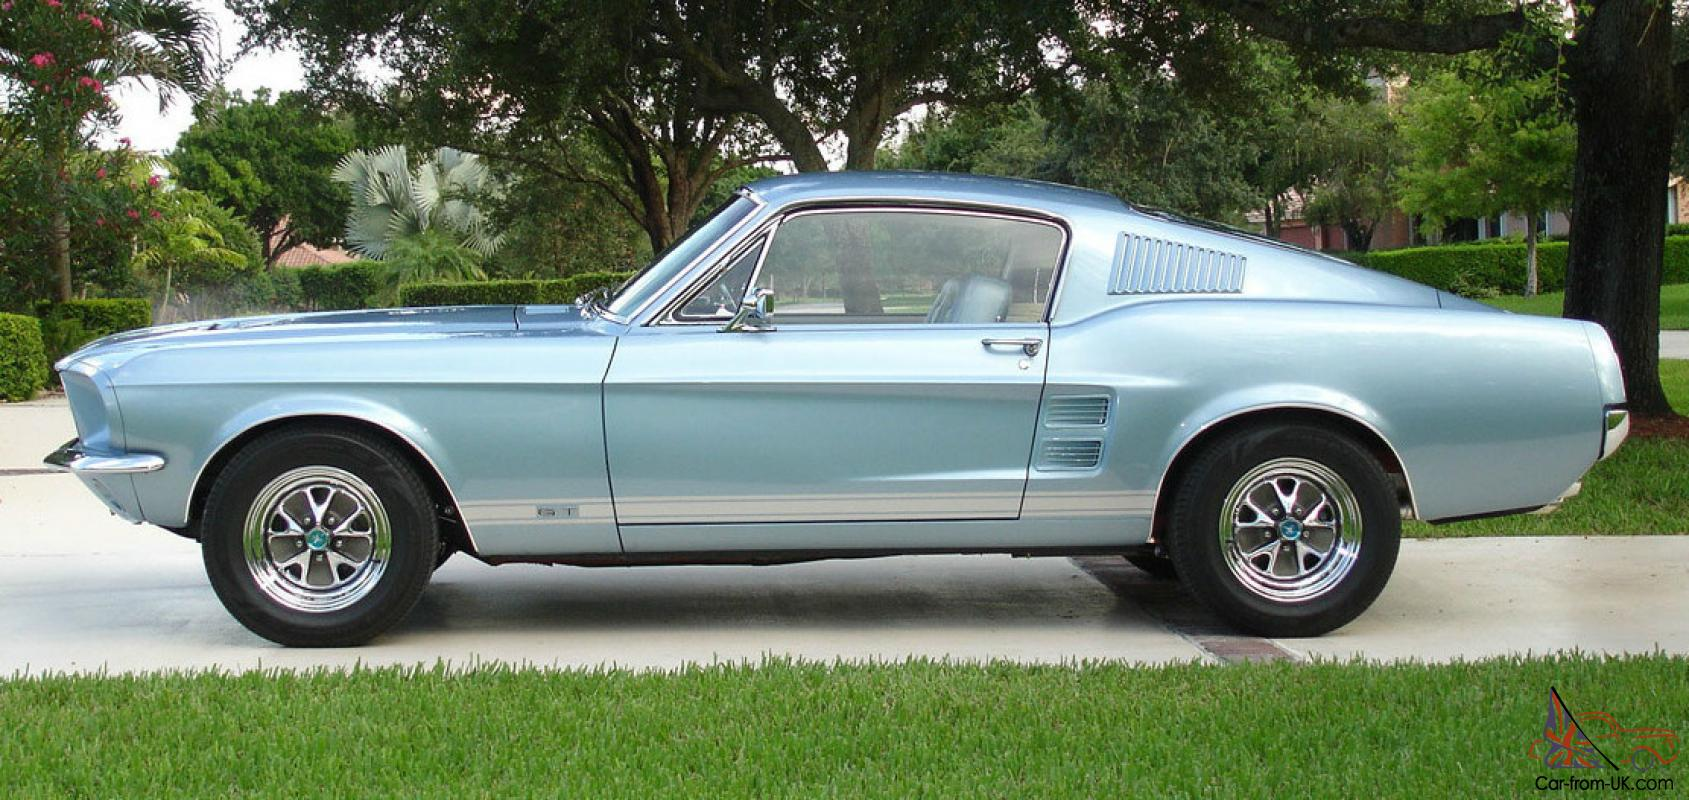 1967 ford mustang gt fastback one of a kind. Black Bedroom Furniture Sets. Home Design Ideas